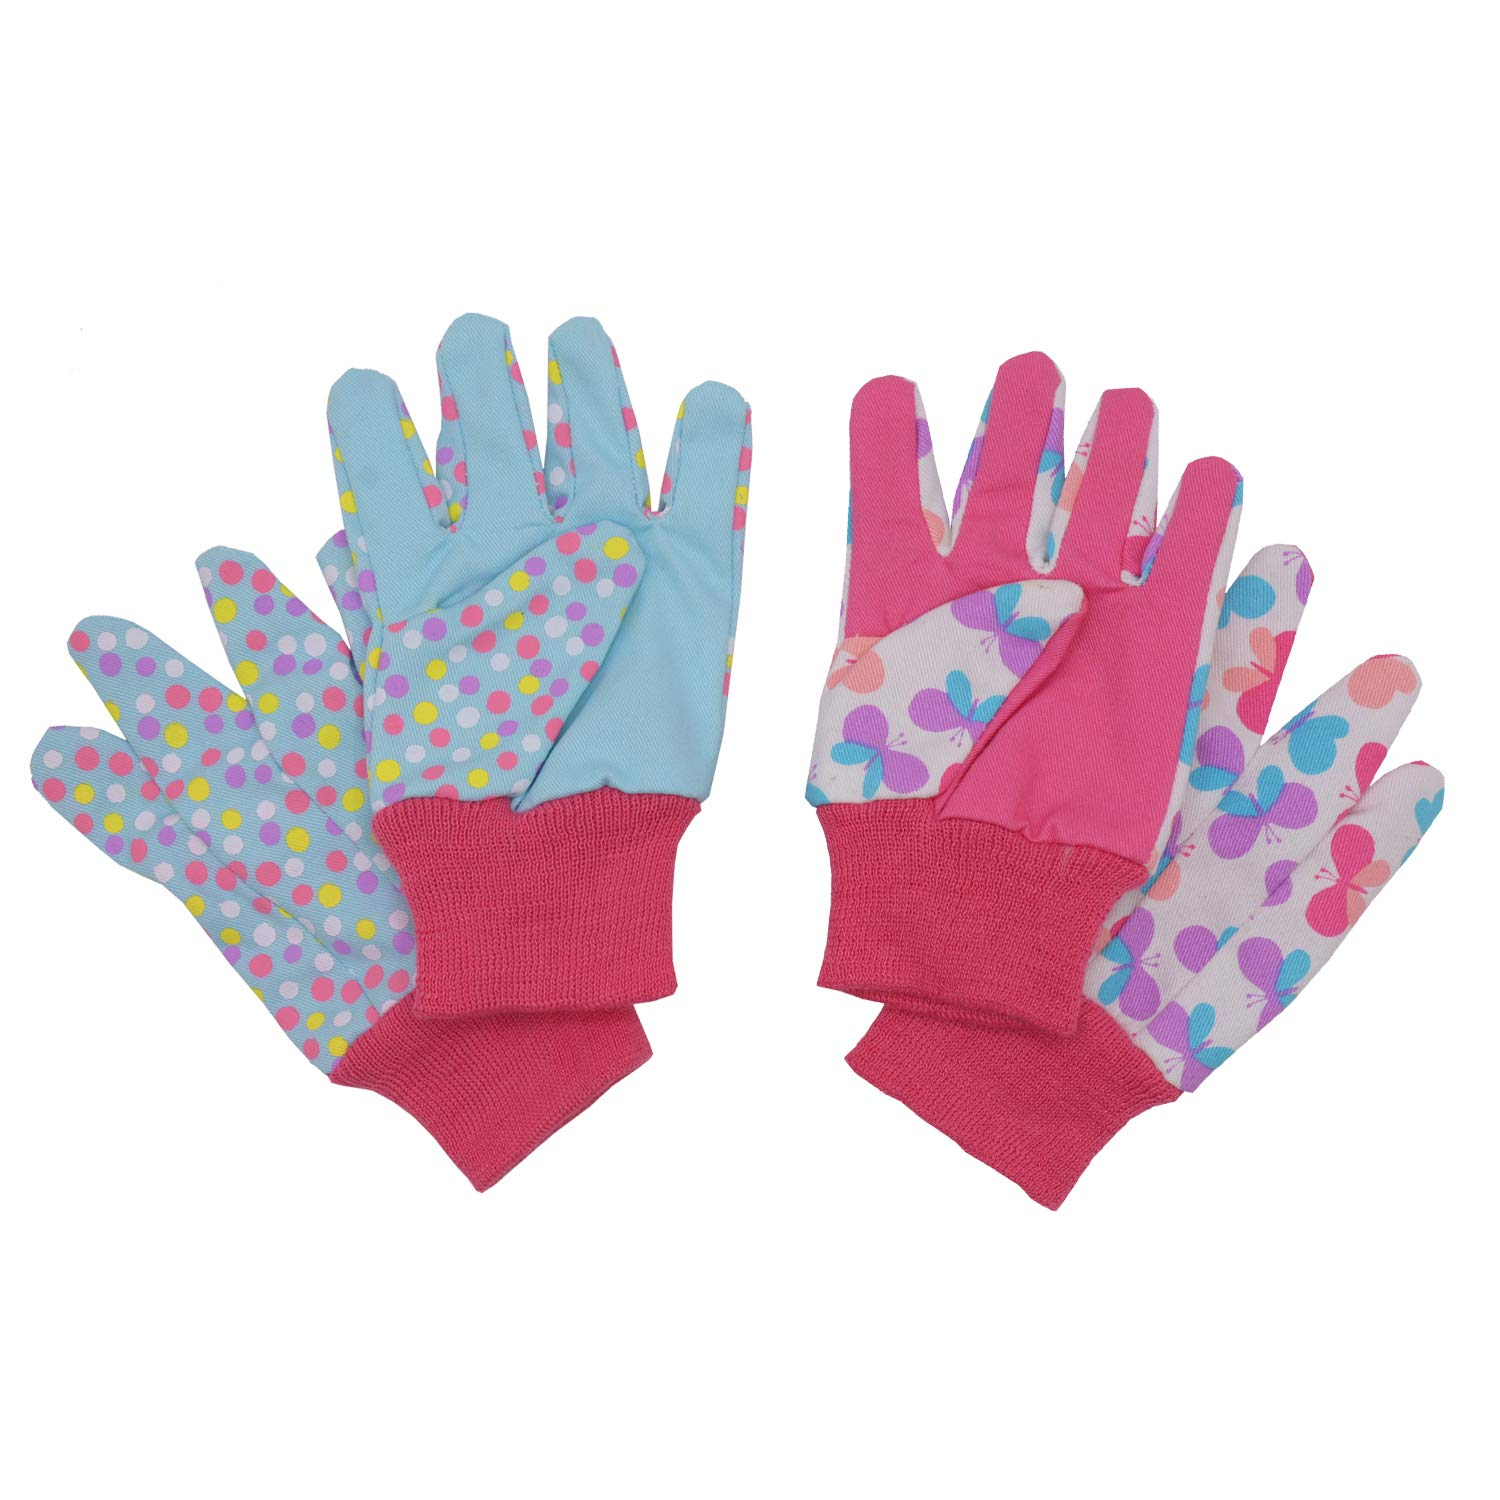 Kids Gardening gloves for age 5-6, age 7-8, 2 Pairs Cotton Garden Working Gloves for girls boys, Dot & Butterfly & Ladybird Print (Medium (age 7-8), Pink (butterfly + dot))